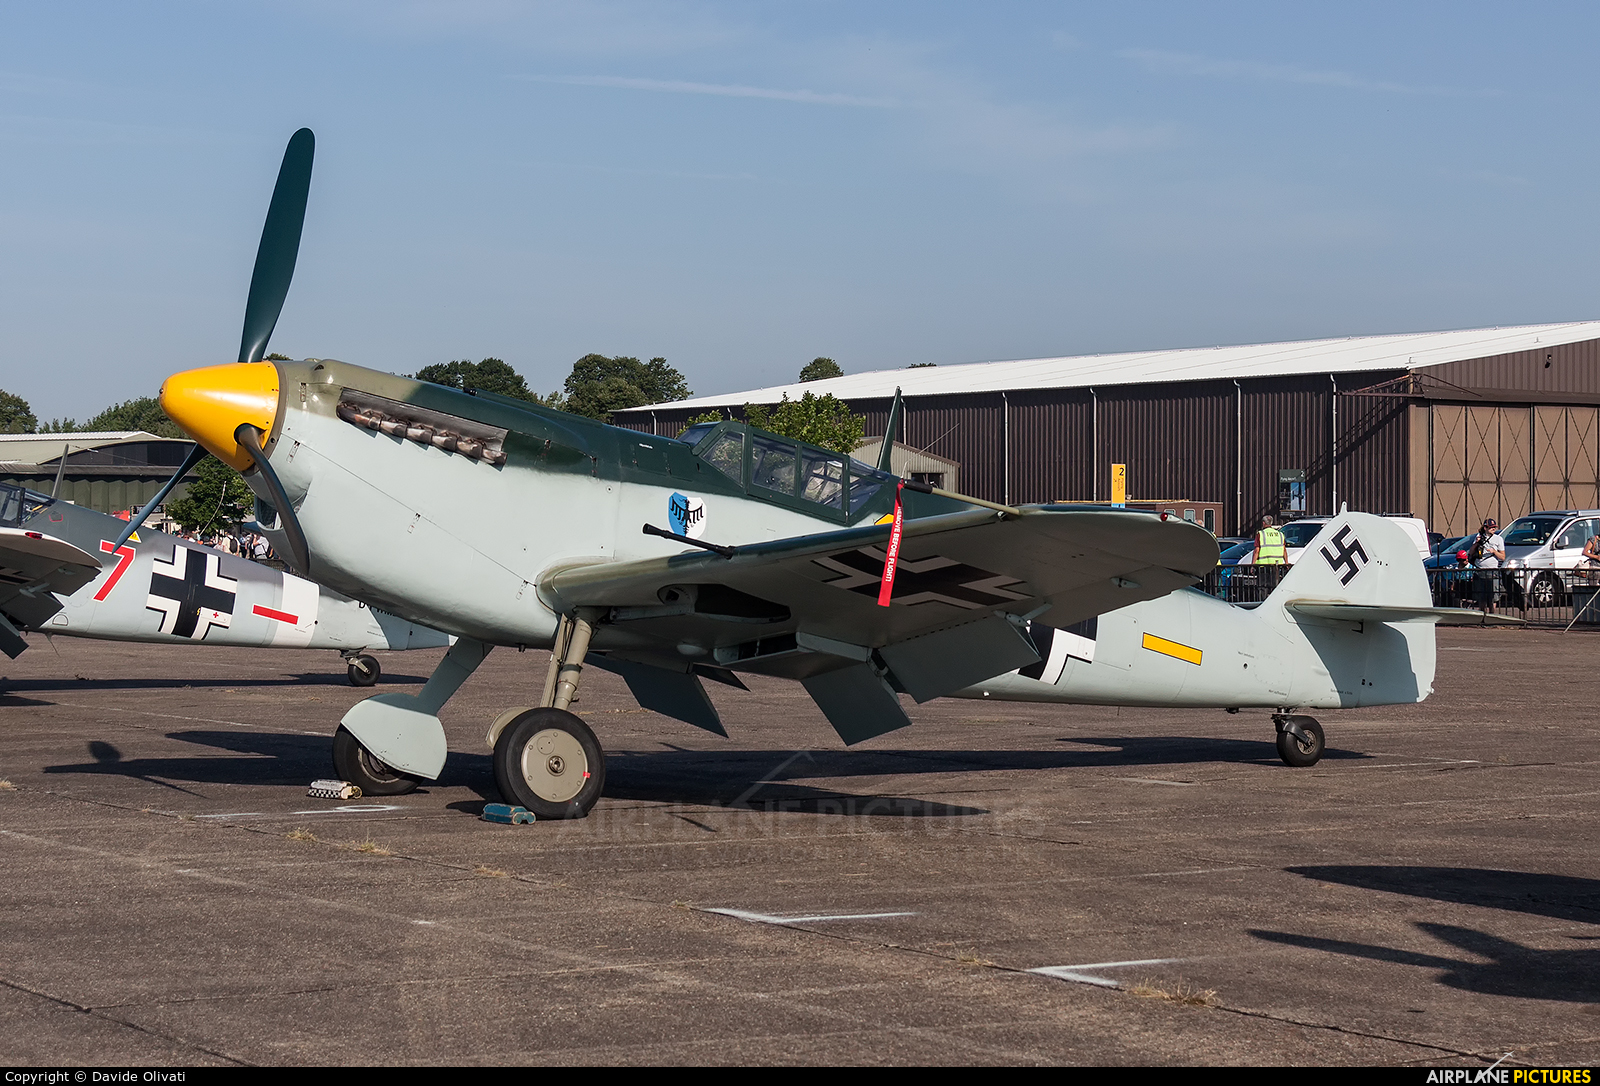 Historic Flying G-BWUE aircraft at Duxford